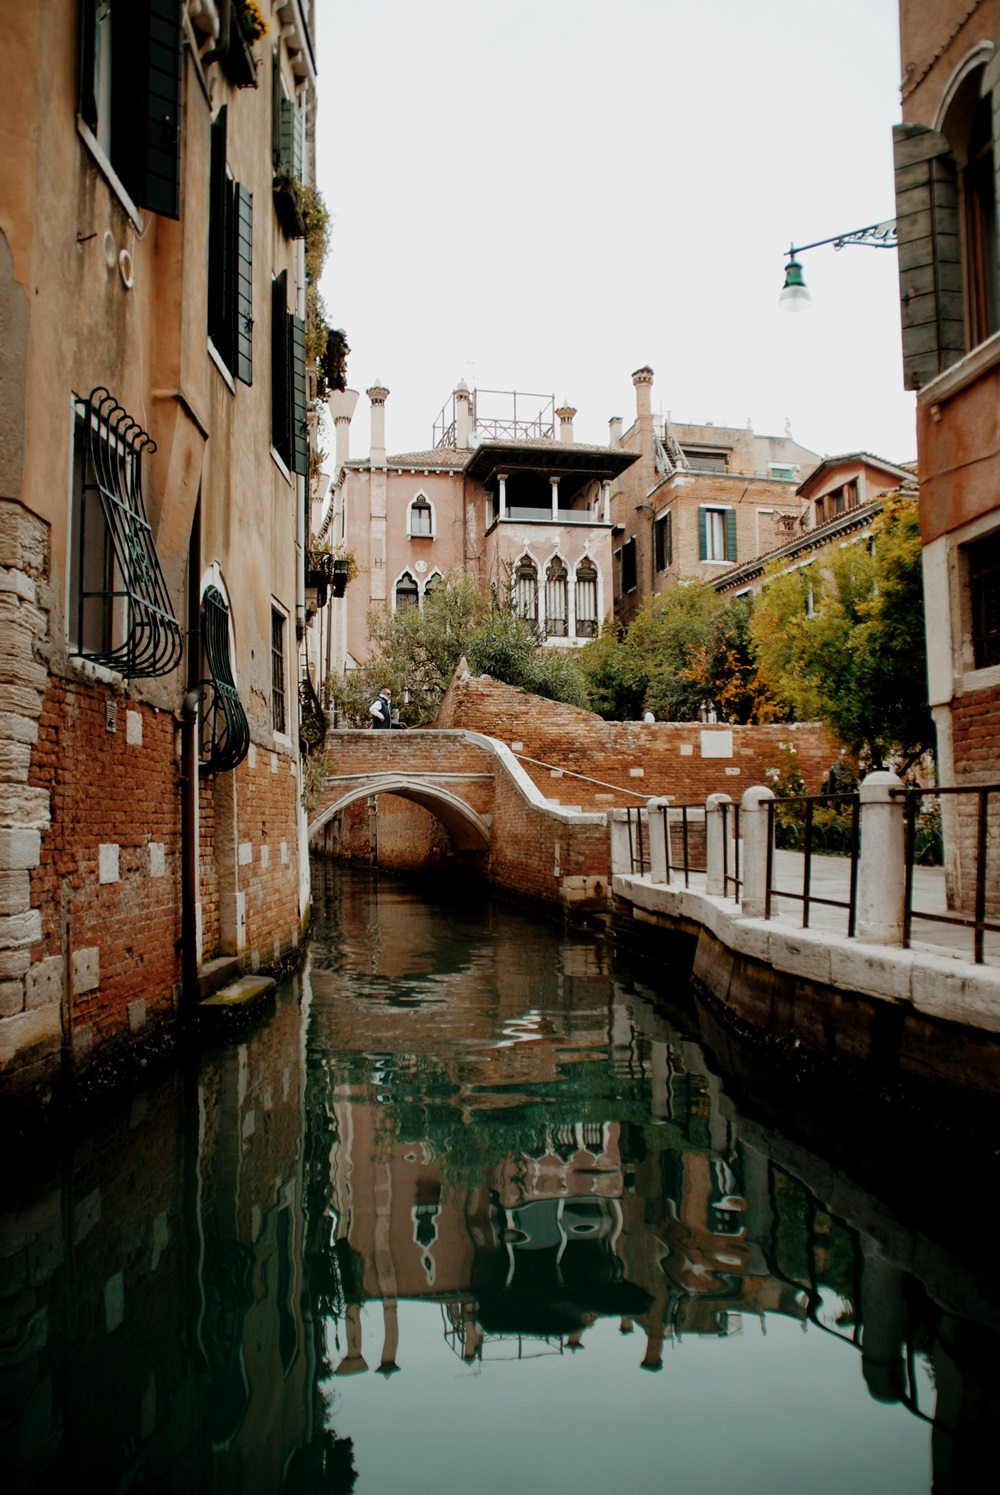 One day in Venice - A Photo Love Story with Bridges